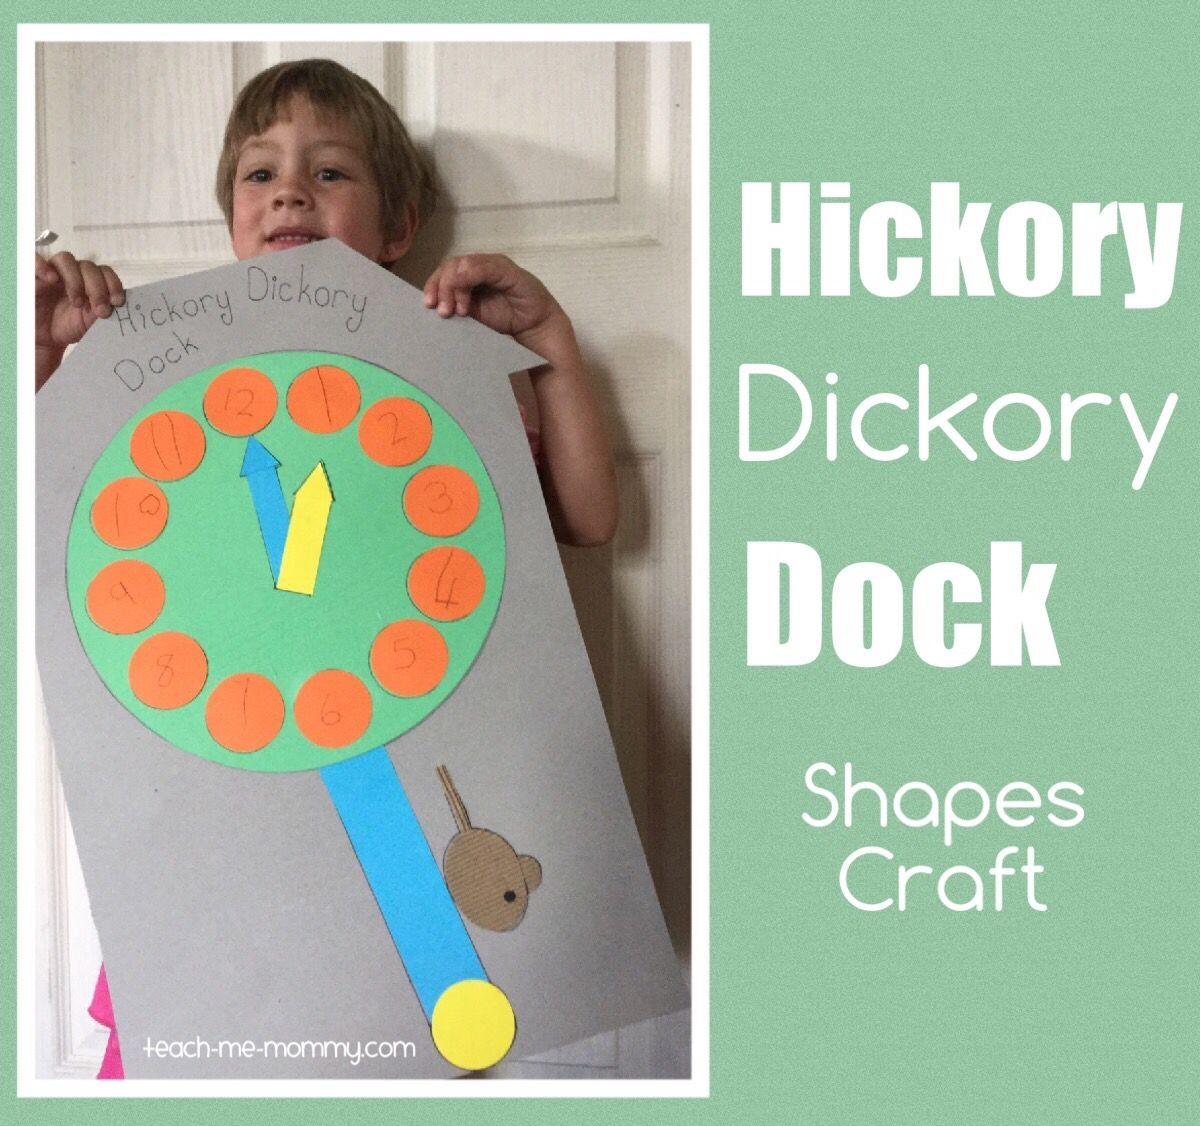 Hickory Dickory Dock Shapes Craft